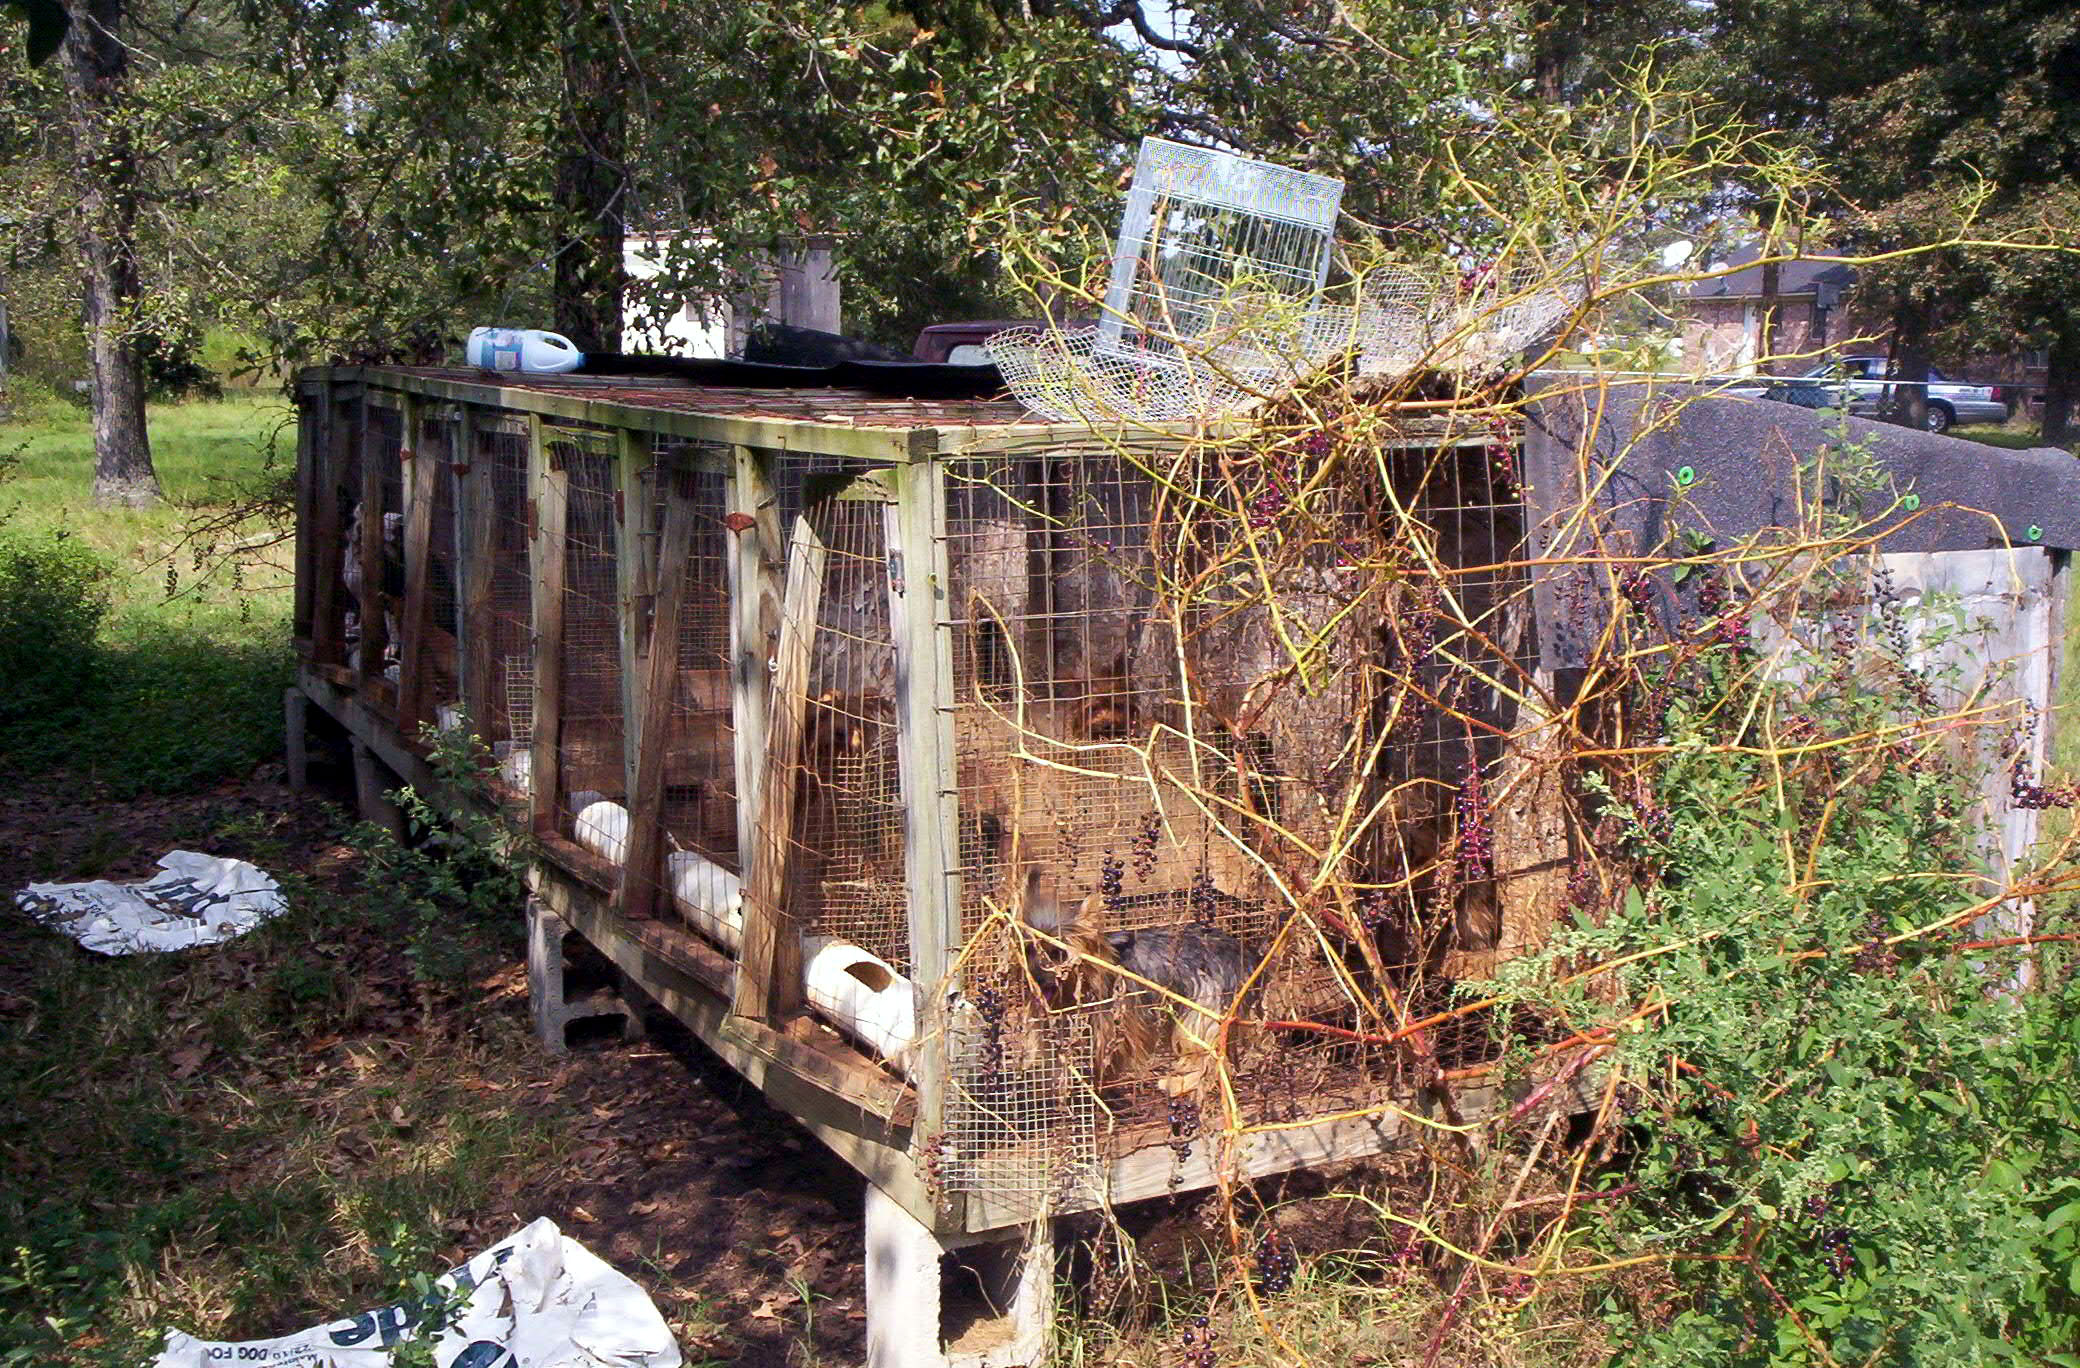 Stop Giving Puppy Mills Advance Notice of Inspections